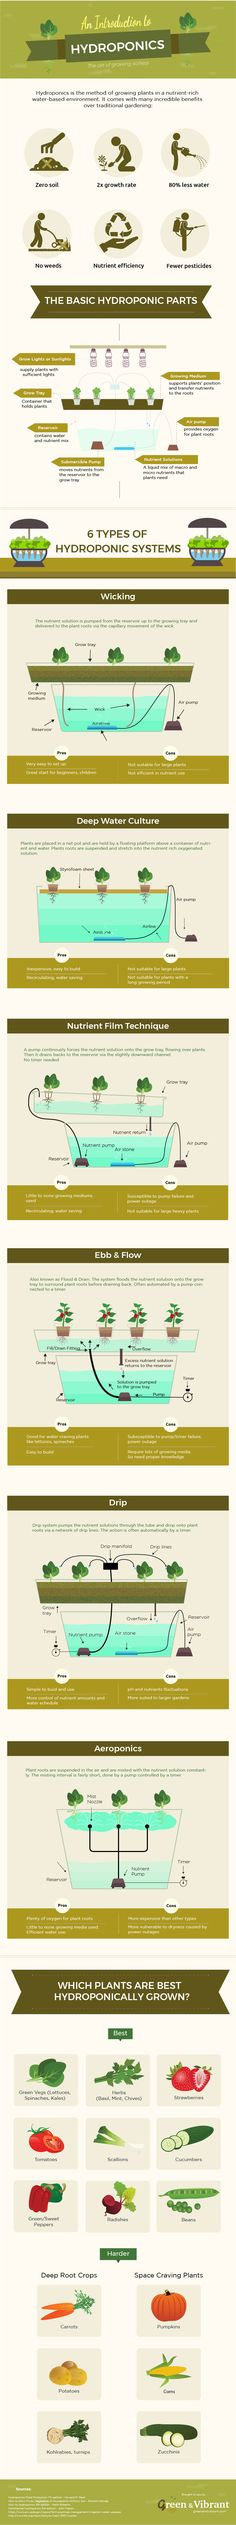 Hydroponic Gardening - The Definitive Guide + Infographic | Green and Vibrant